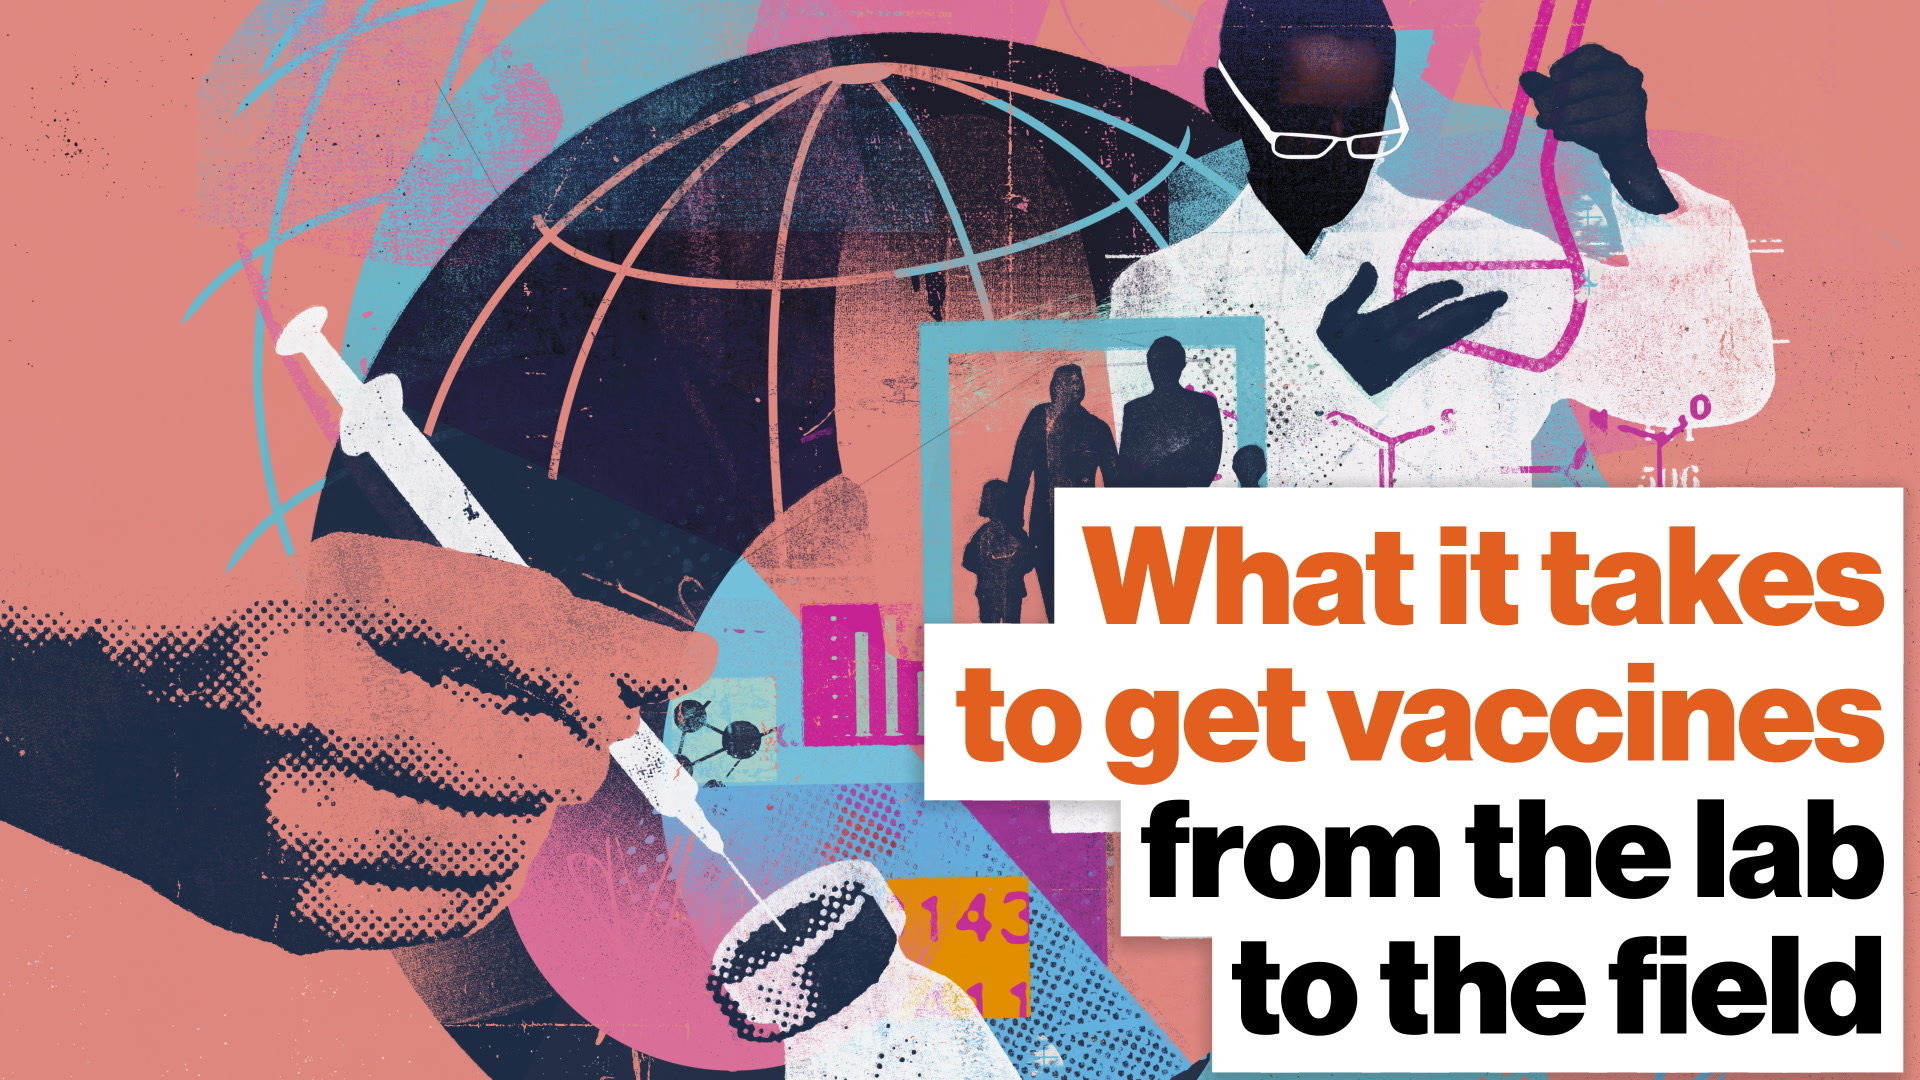 What it takes to get vaccines from the lab to the field